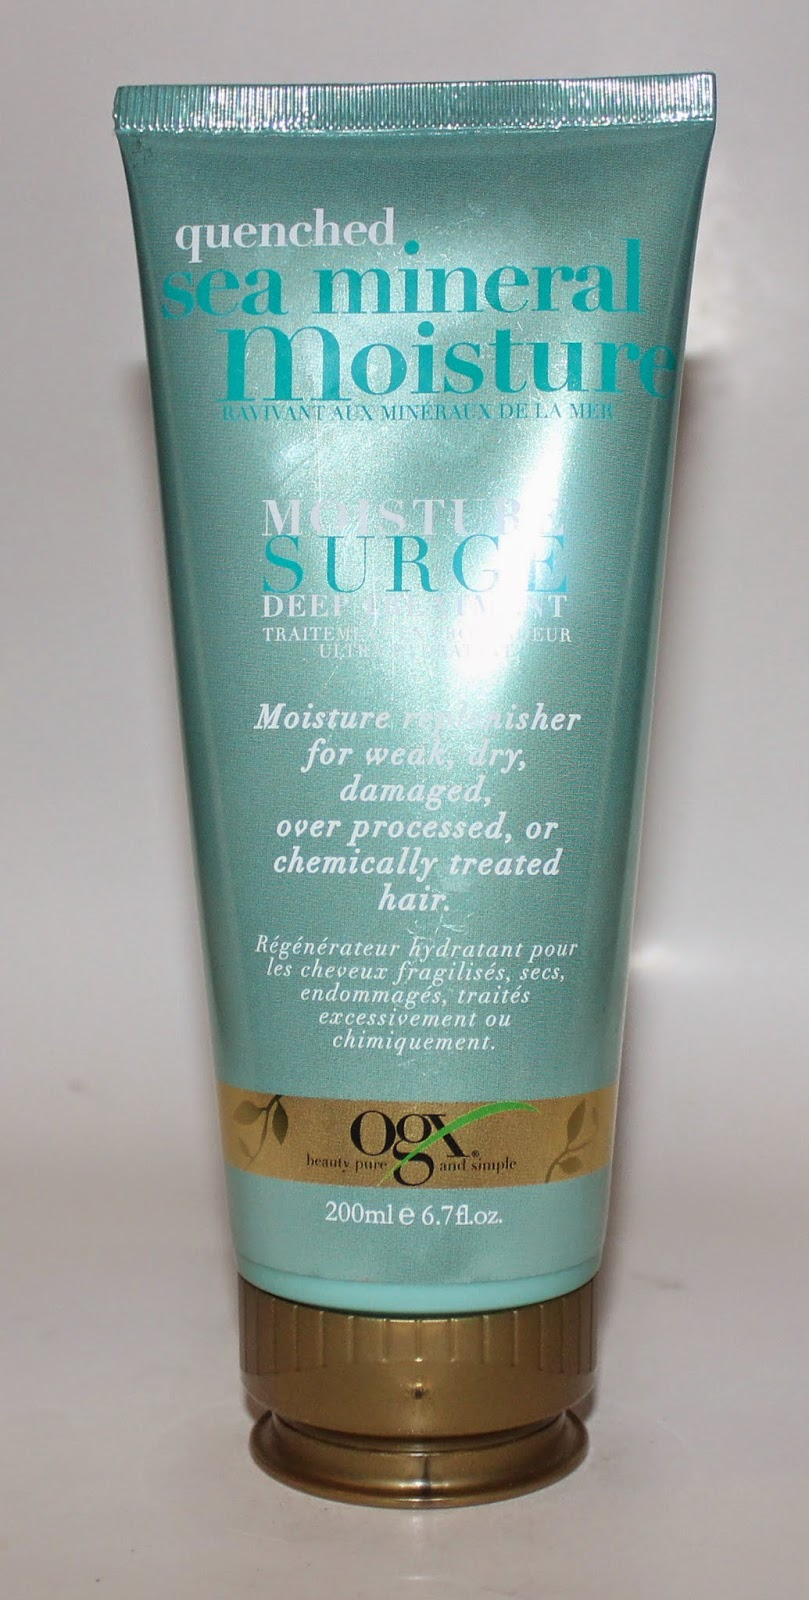 OGX Quenched Sea Mineral Moisture Surge Deep Treatment